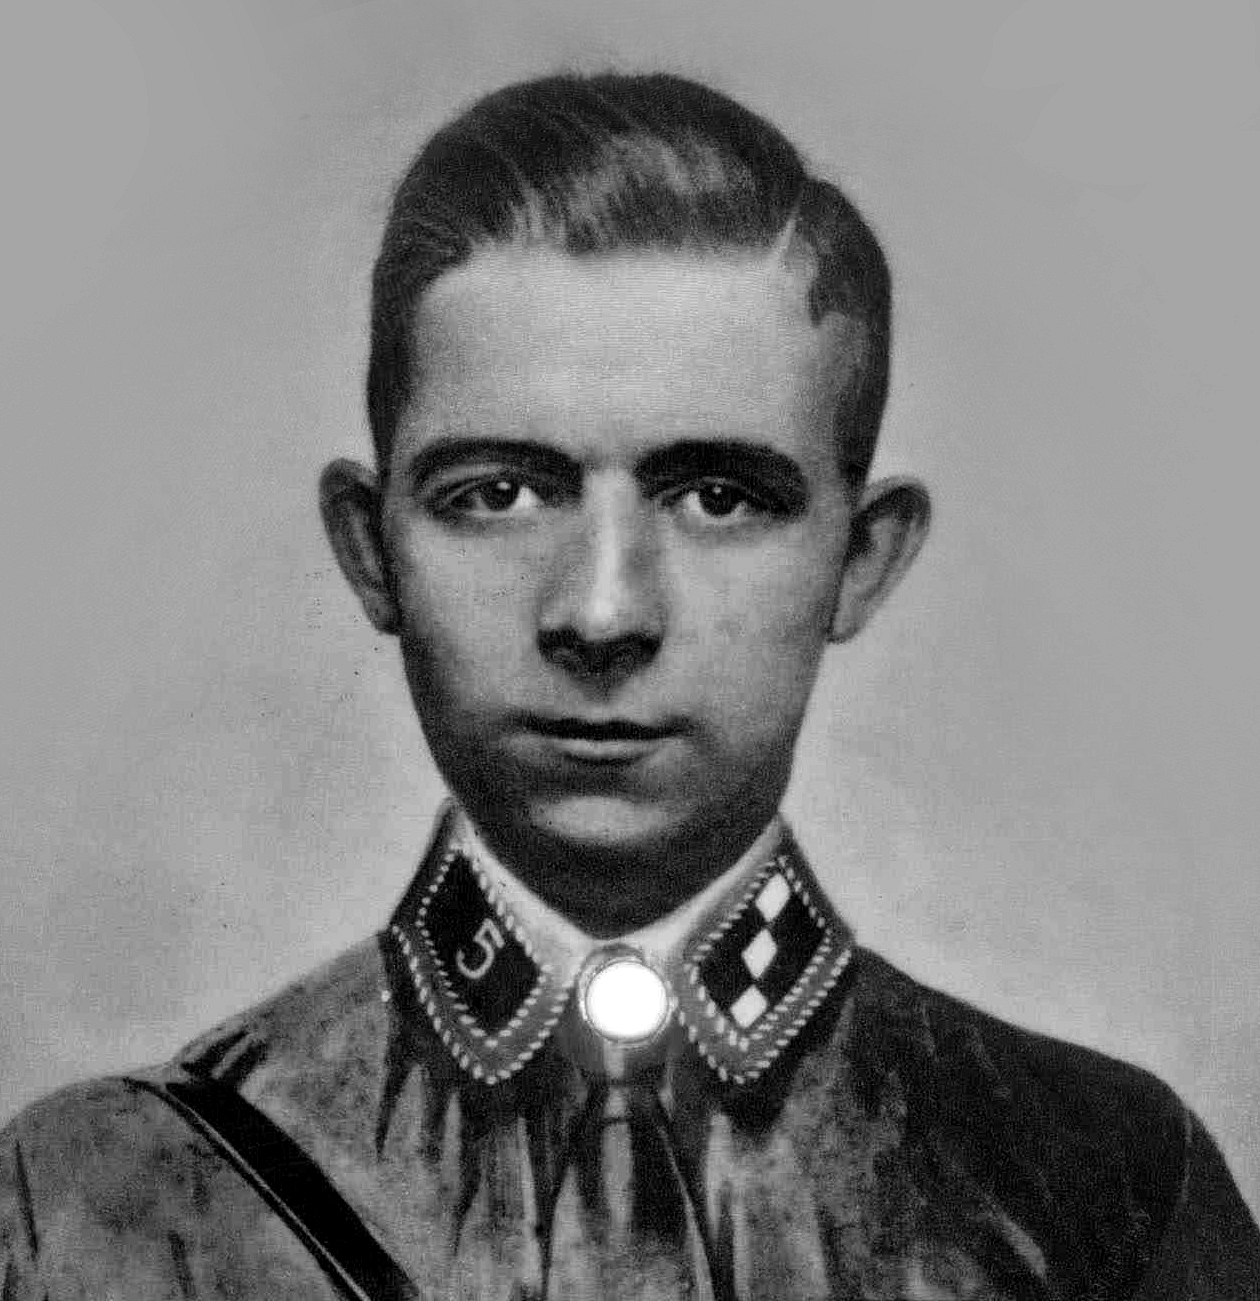 The Occult History of the Third Reich: Die Fahne Hoch ...